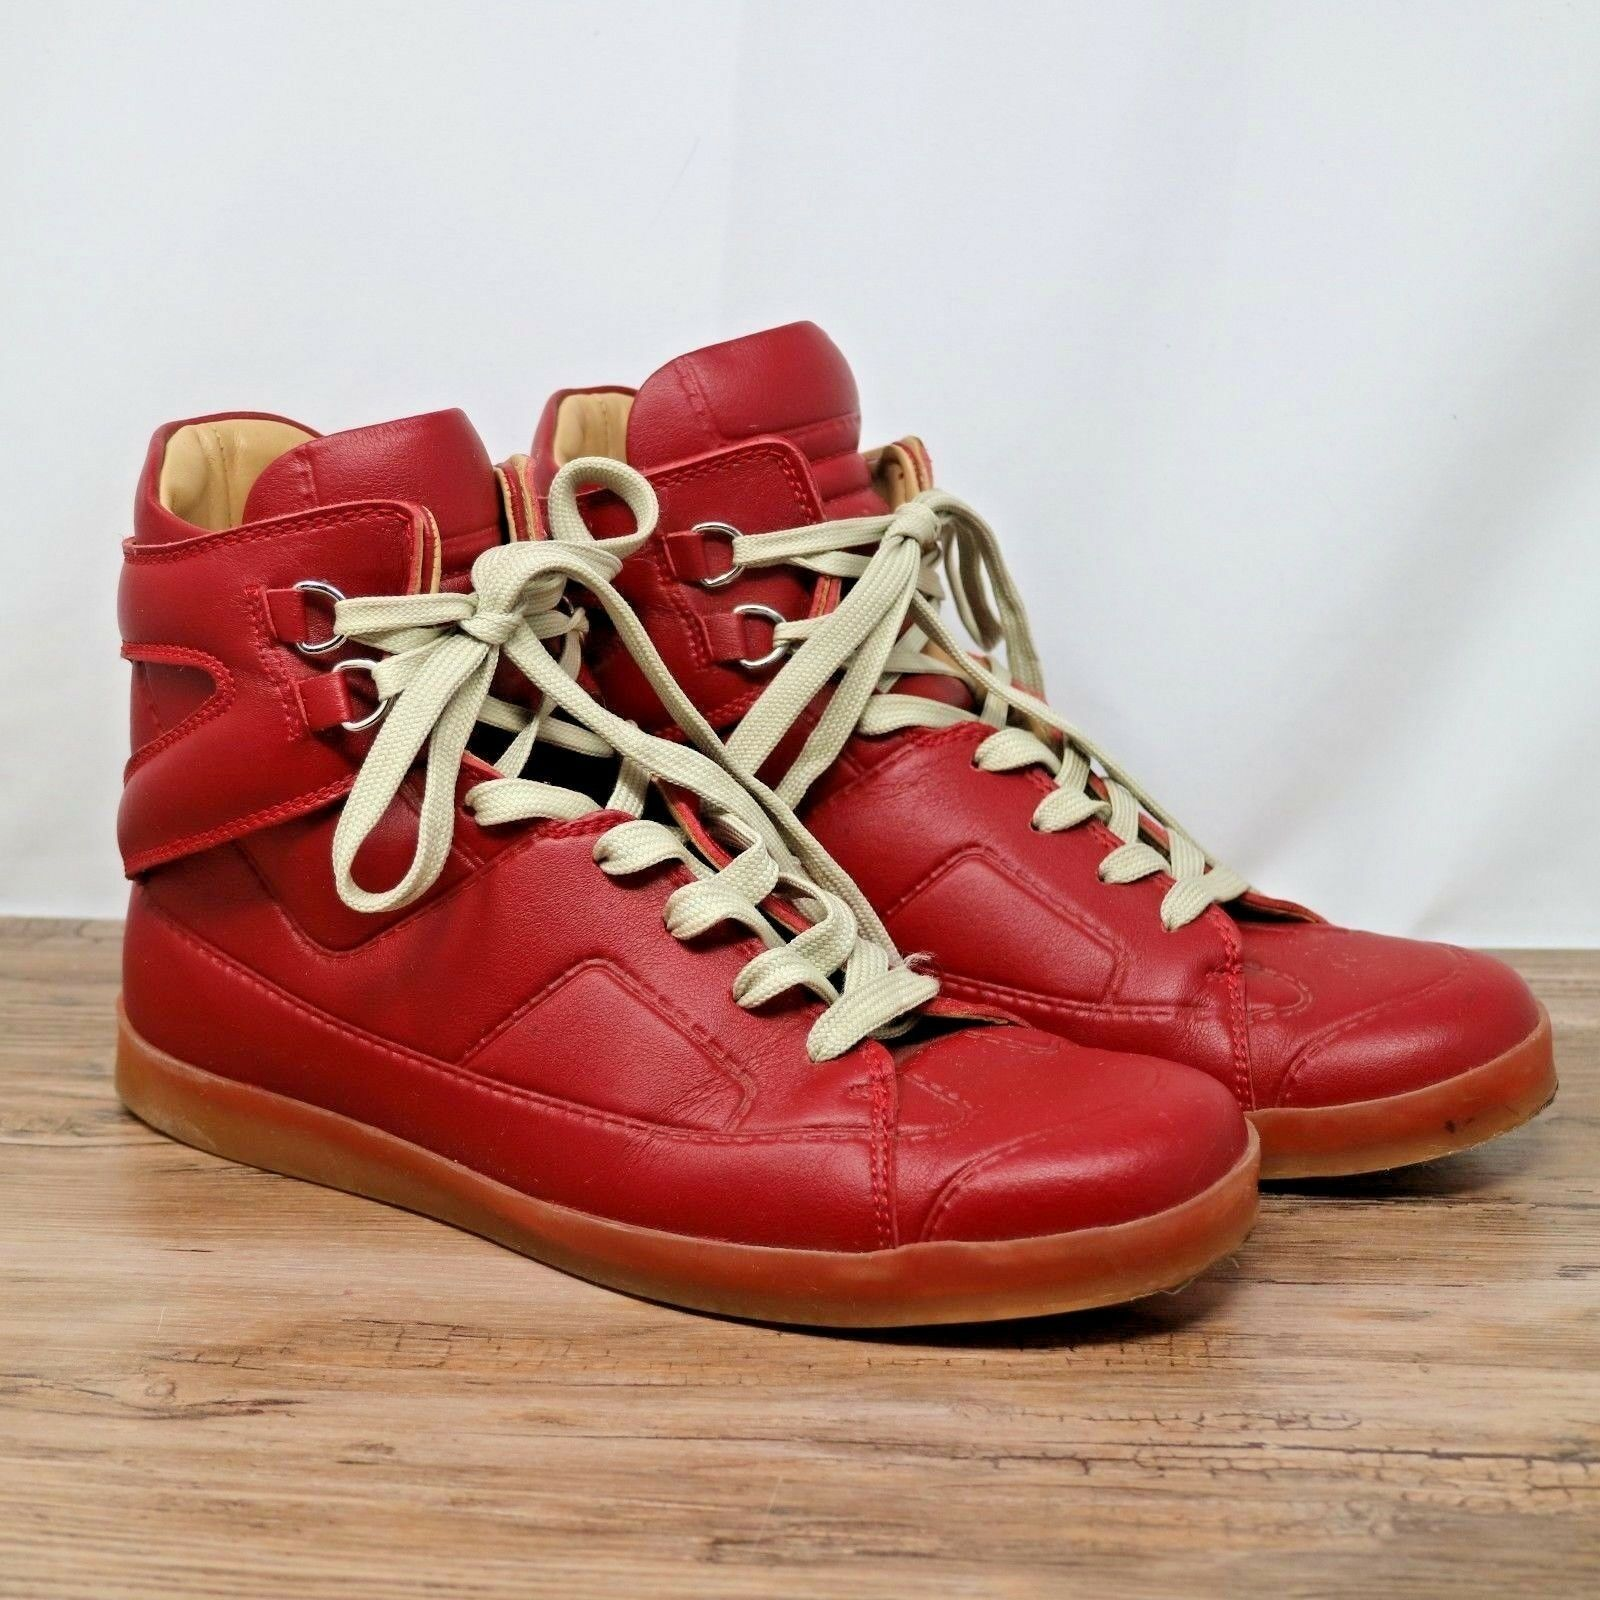 Maison Martin Margiela x H&M Mens Red Leather Hi Tops Sneakers shoes 43 EU 10 US